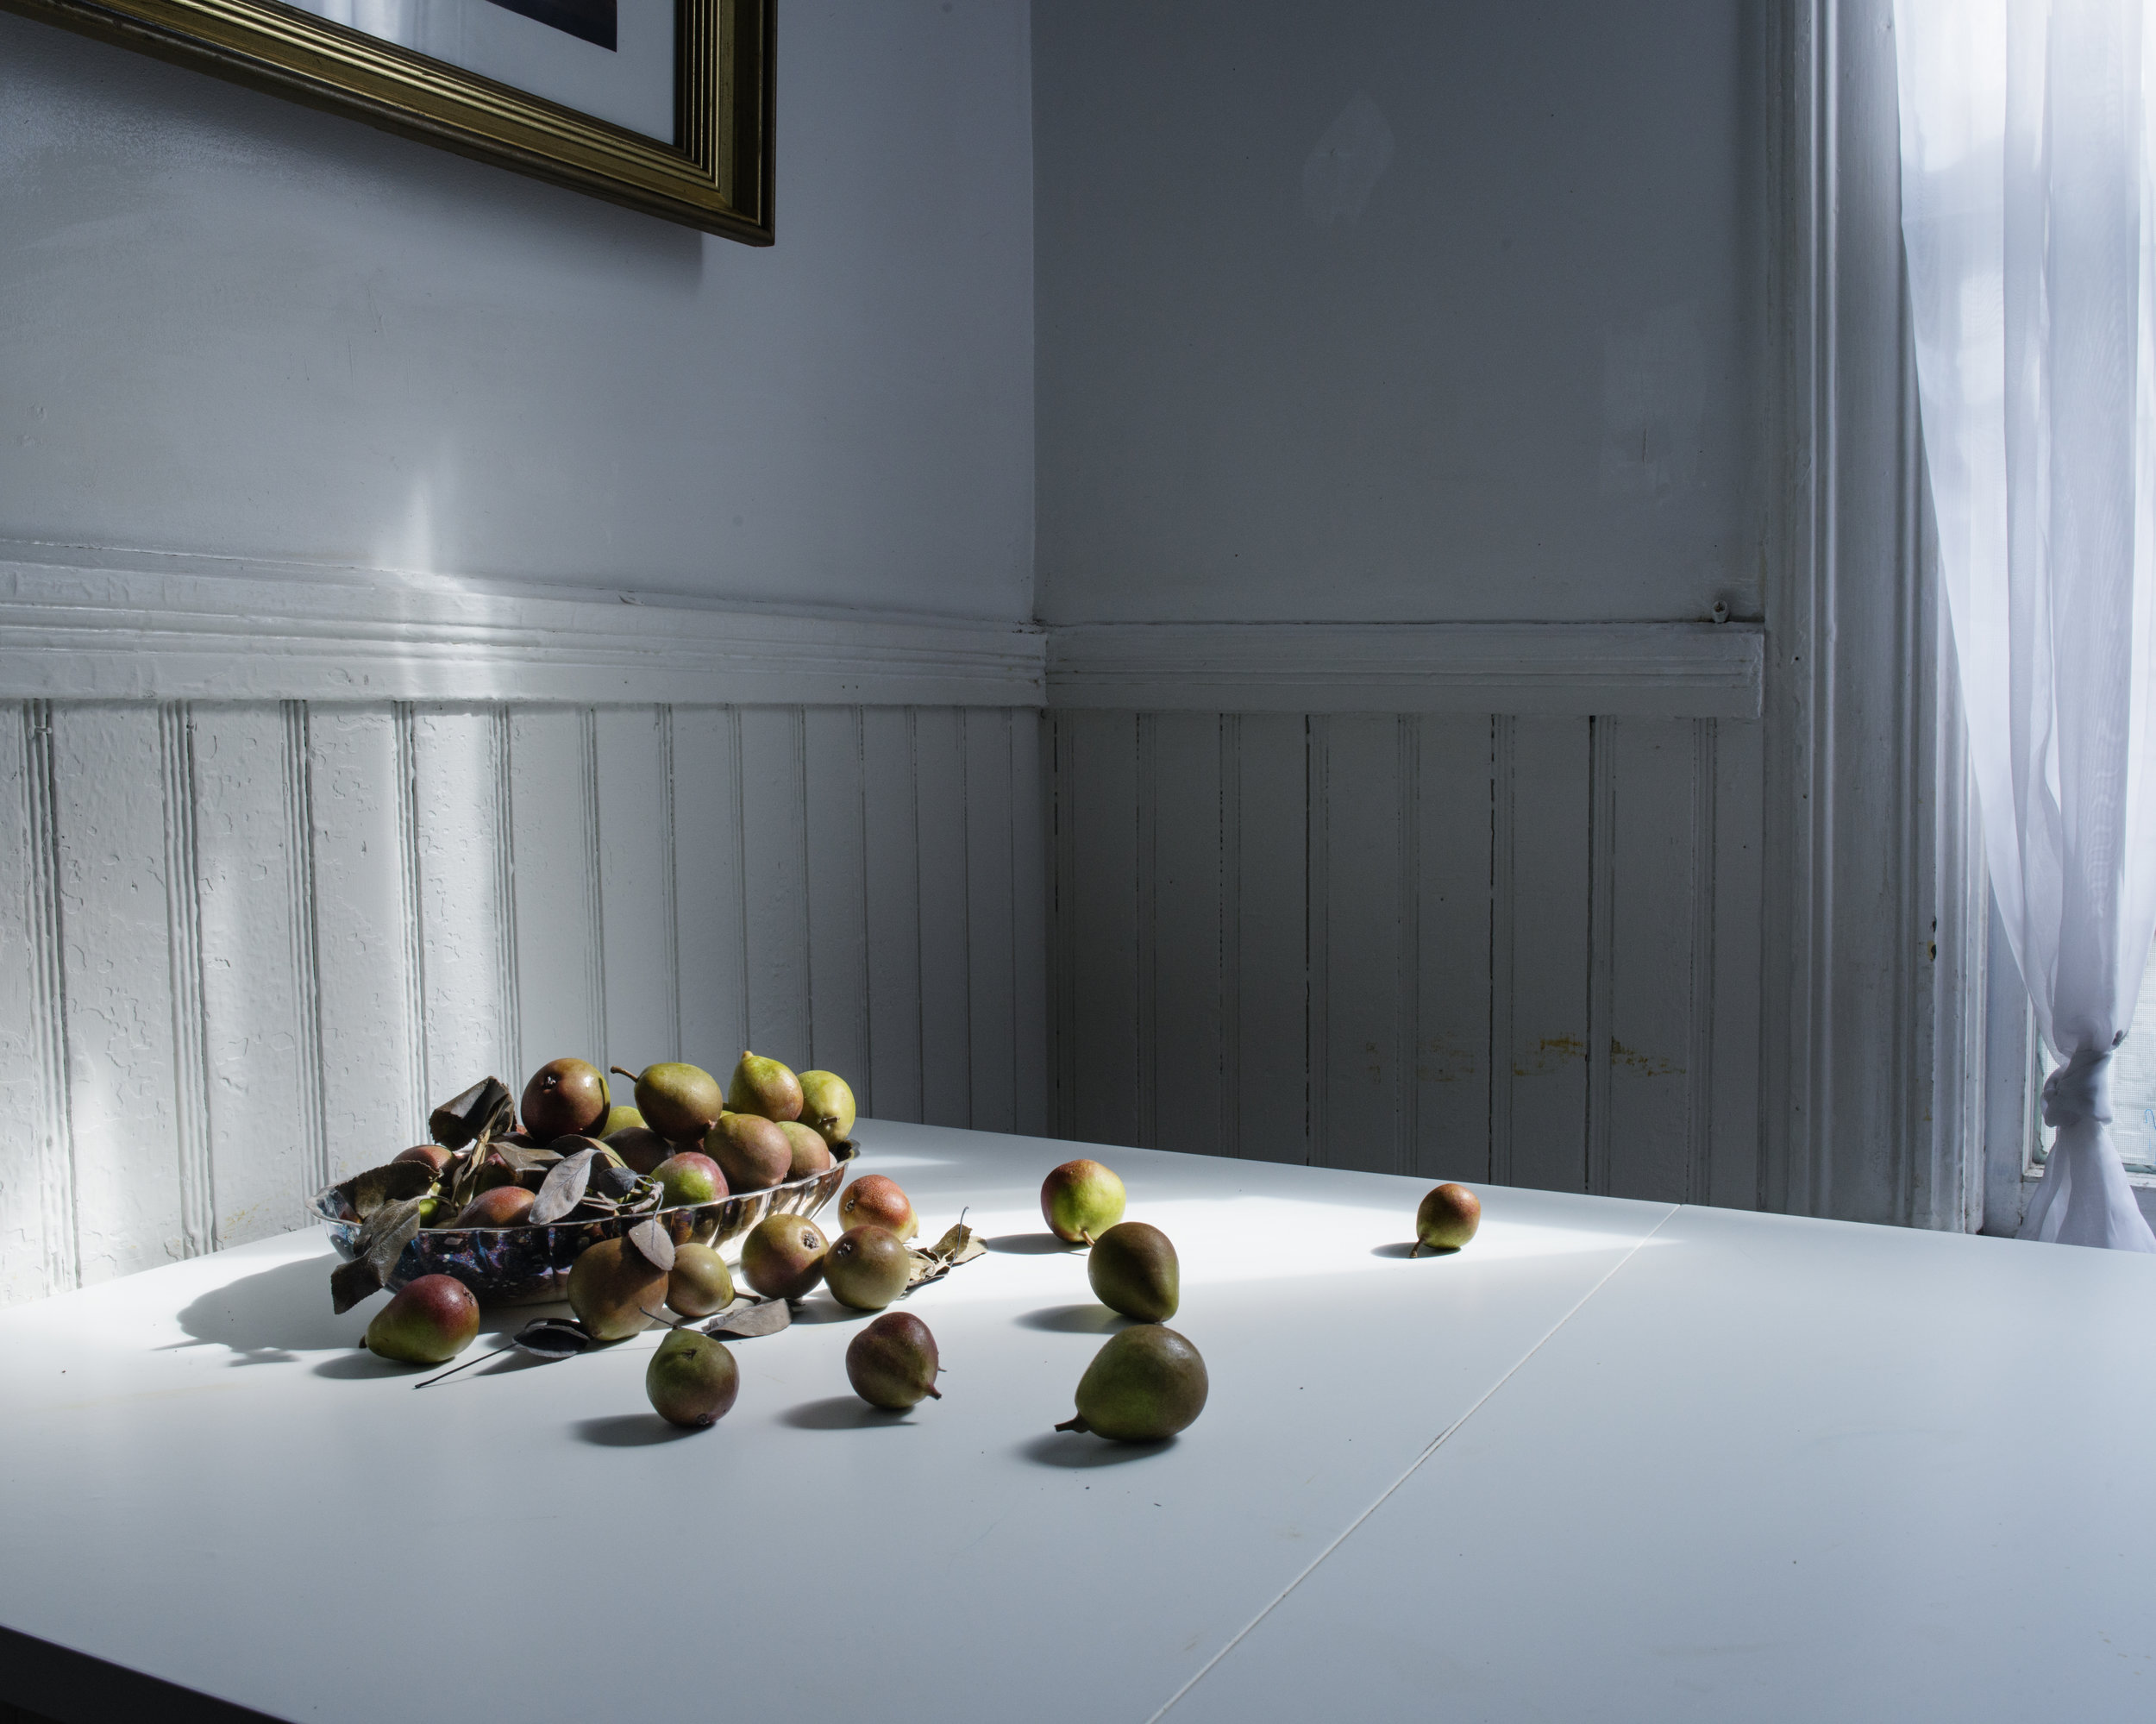 Pears on the kitchen table